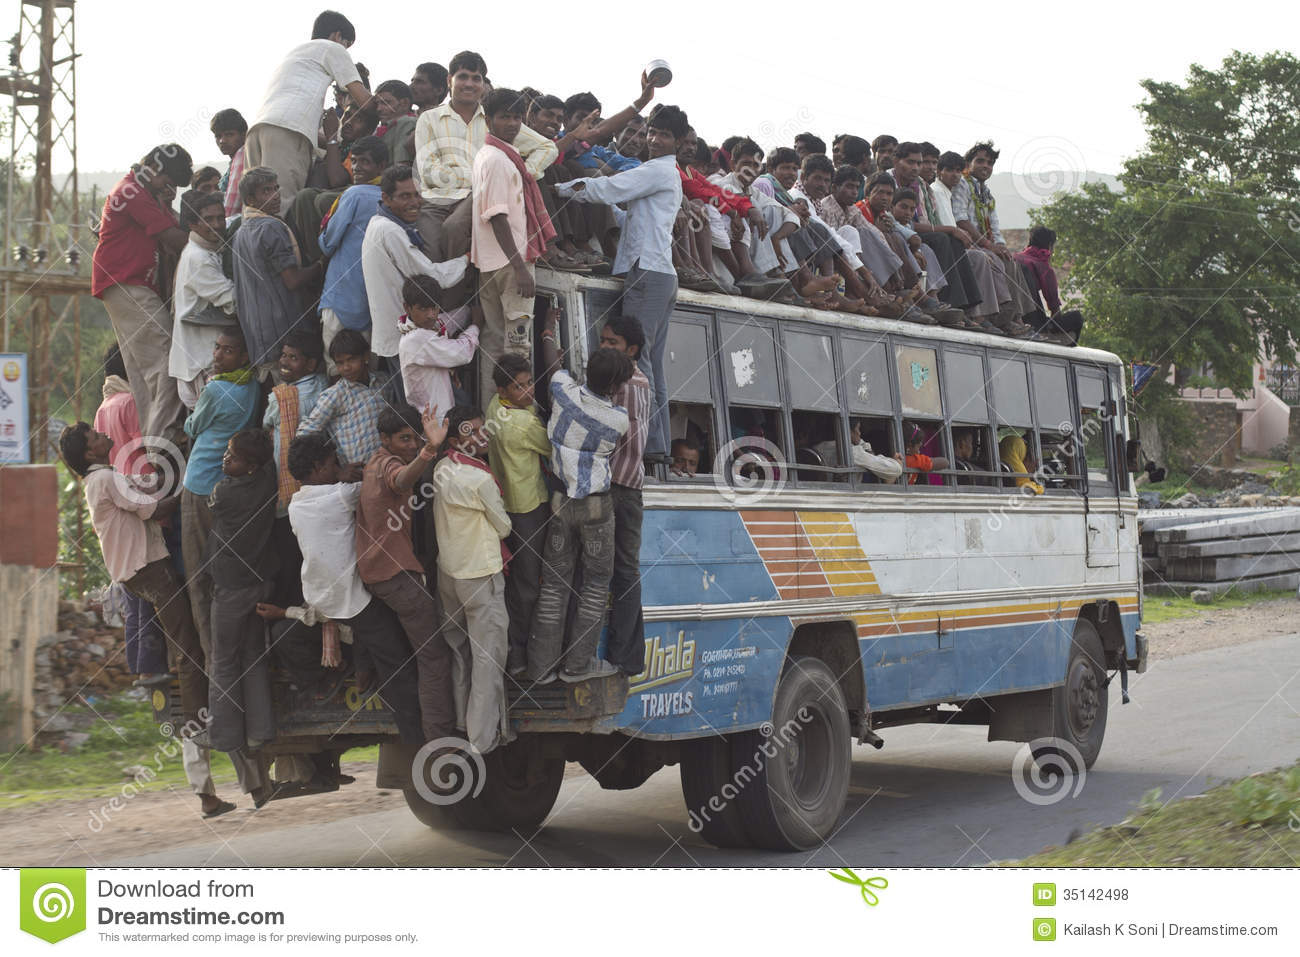 Overload bus editorial stock photo  Image of togetherness